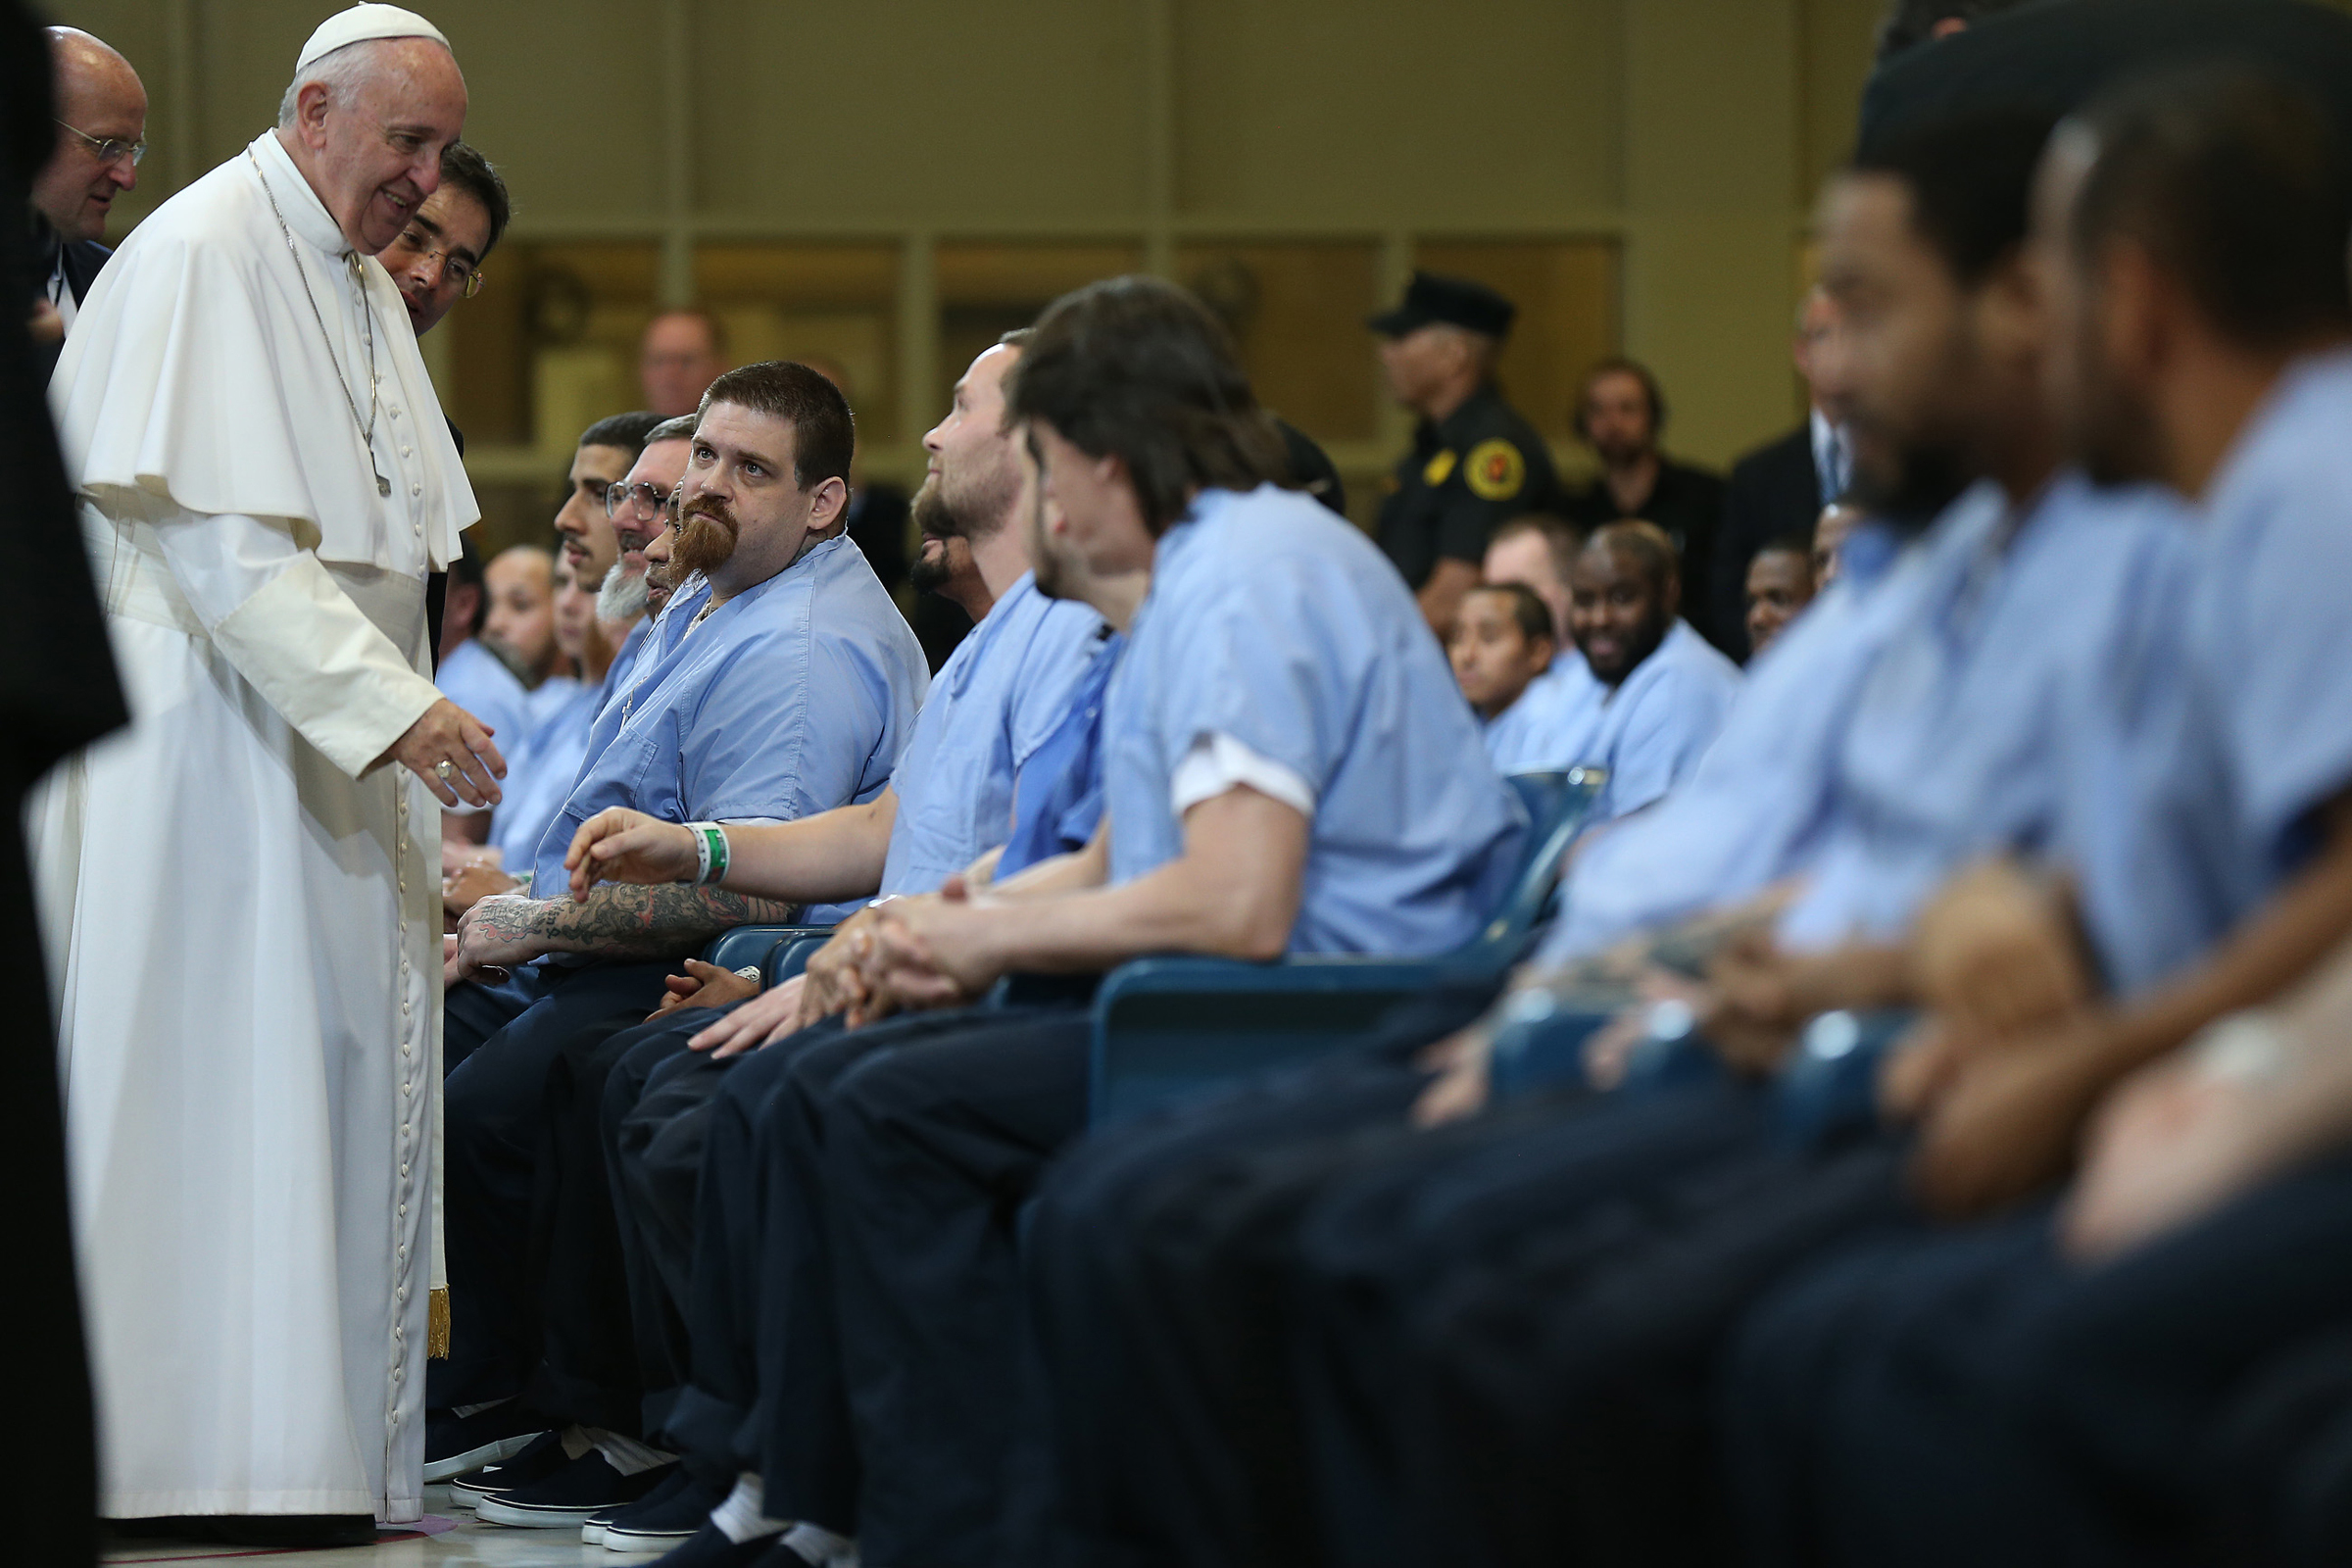 Pope Francis greets inmates during his visit to the Curran-Fromhold Correction Facility in Philadelphia, Pennsylvania September 27, 2015. REUTERS/David Maialetti/Pool - RTX1SPSZ